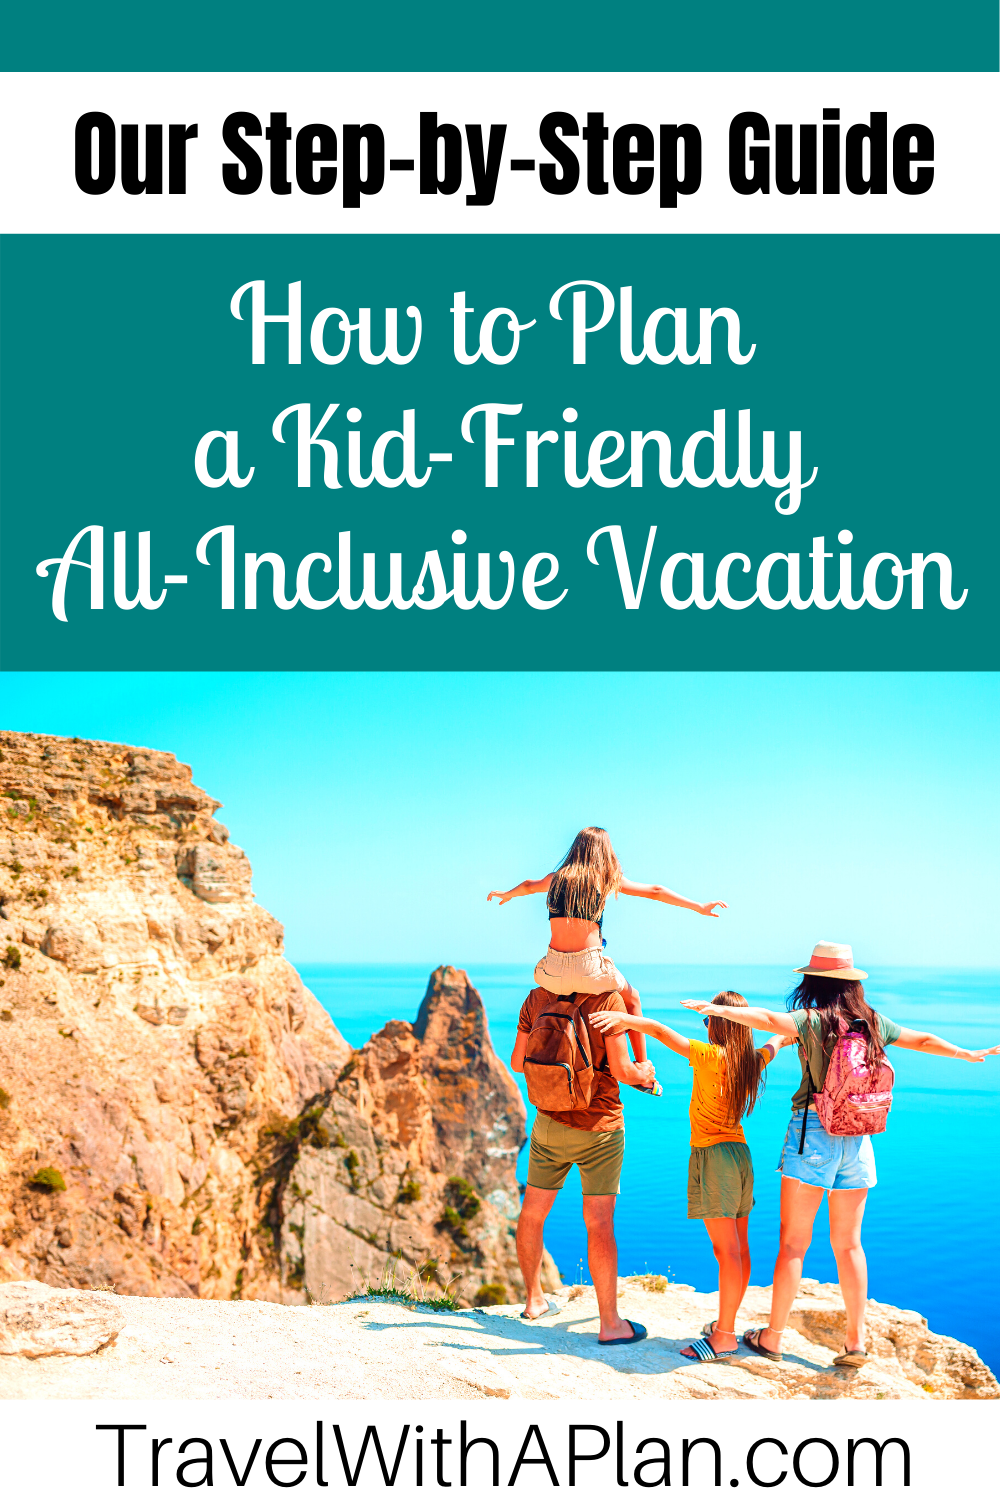 Click here to learn how to plan a kid-friendly all-inclusive vacation month-by-month!